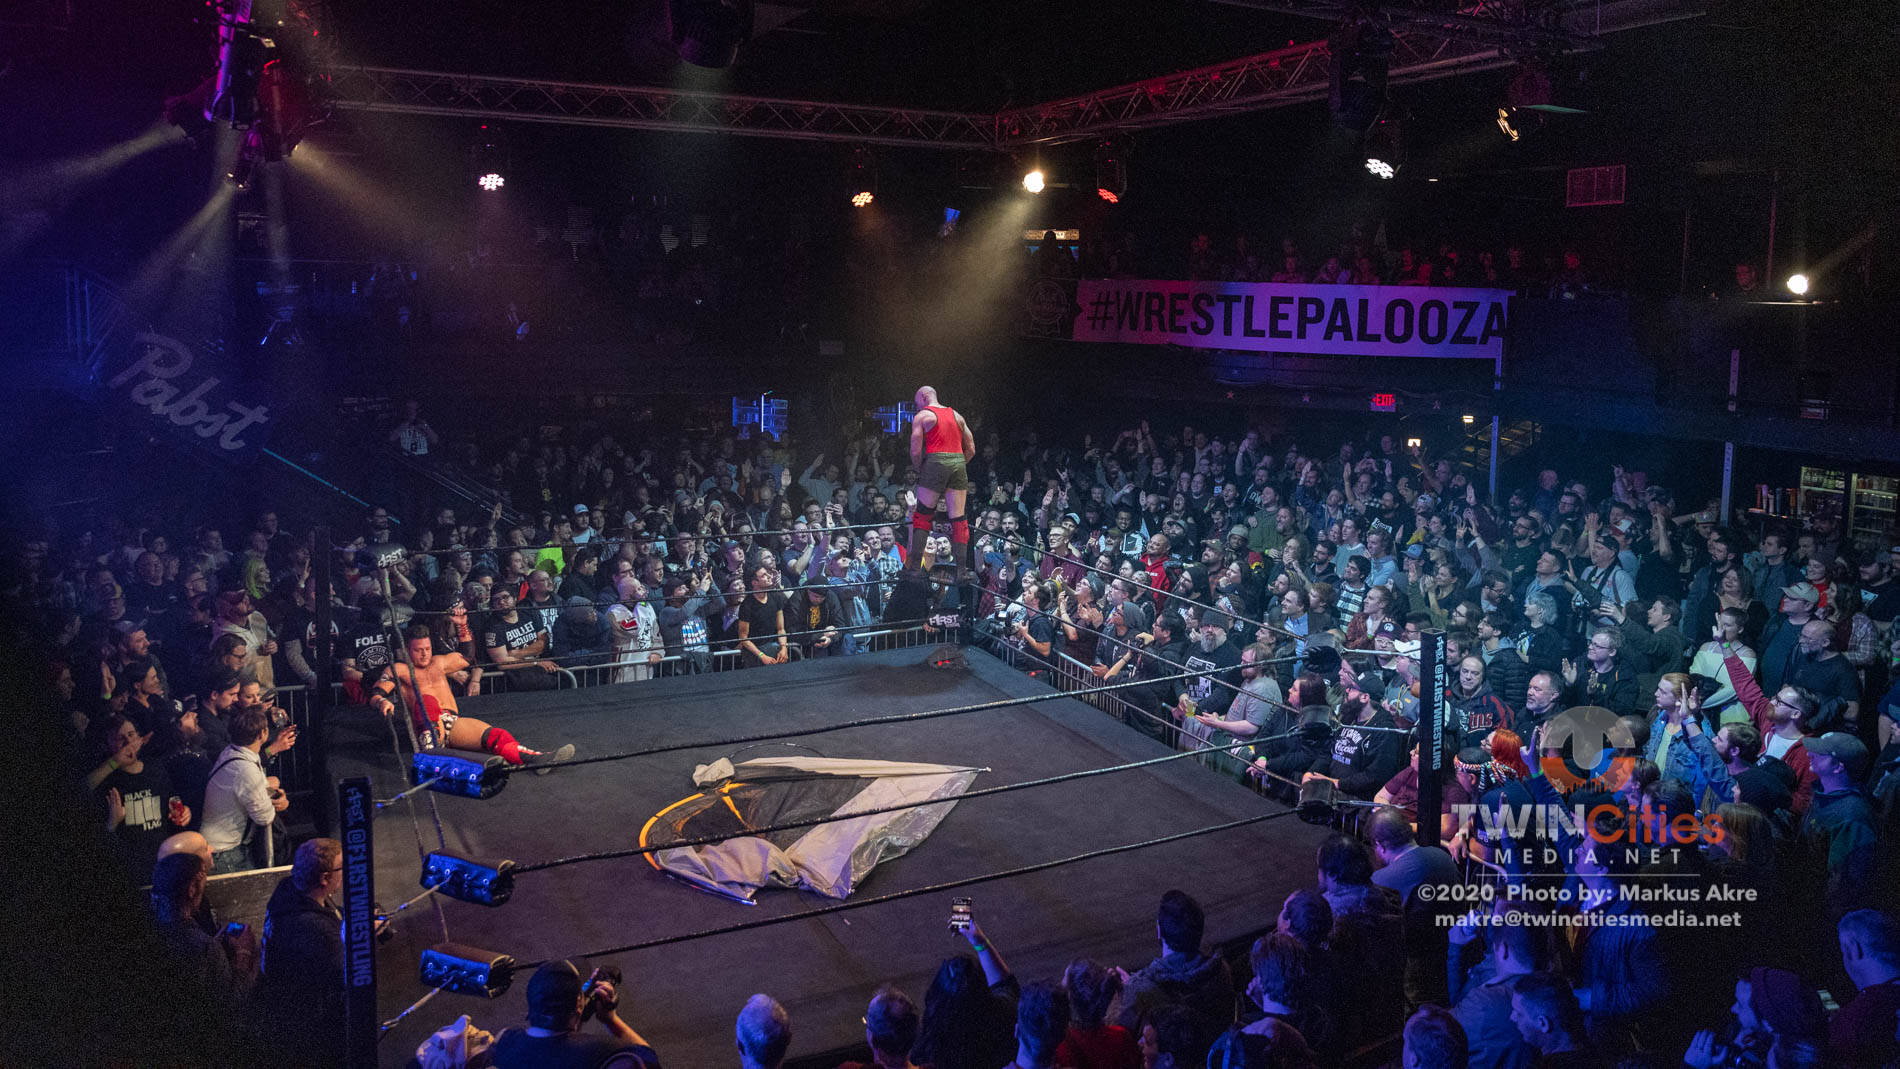 Wrestlepalooza-Day-2-19